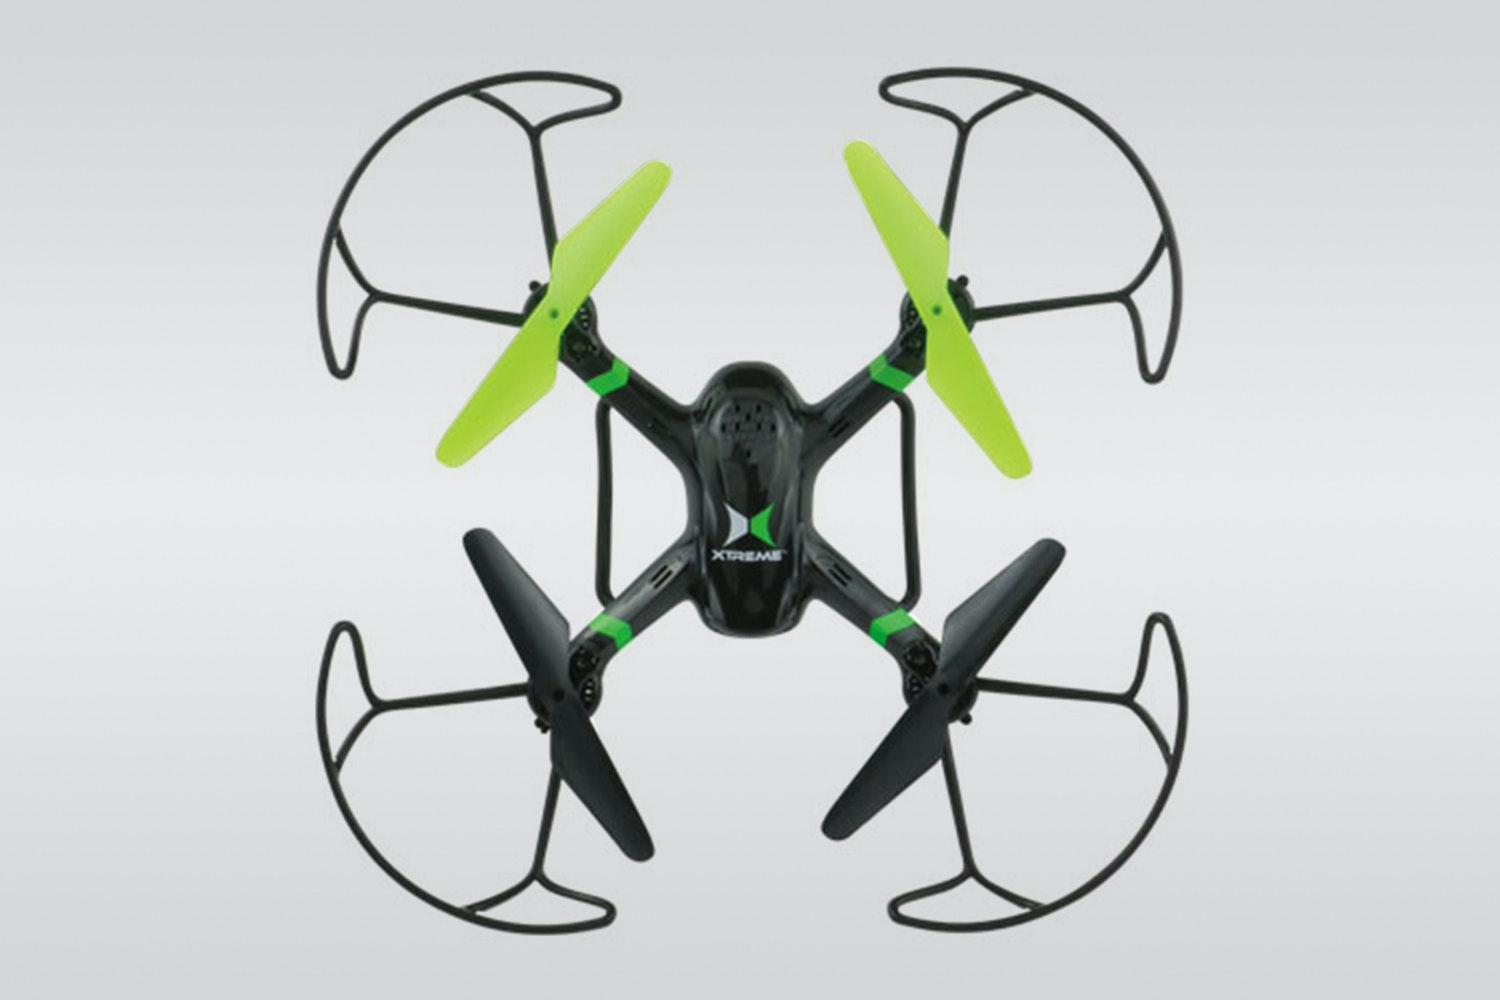 Xtreme Cables XRaptor 6-Axis Quadcopter w/ Camera